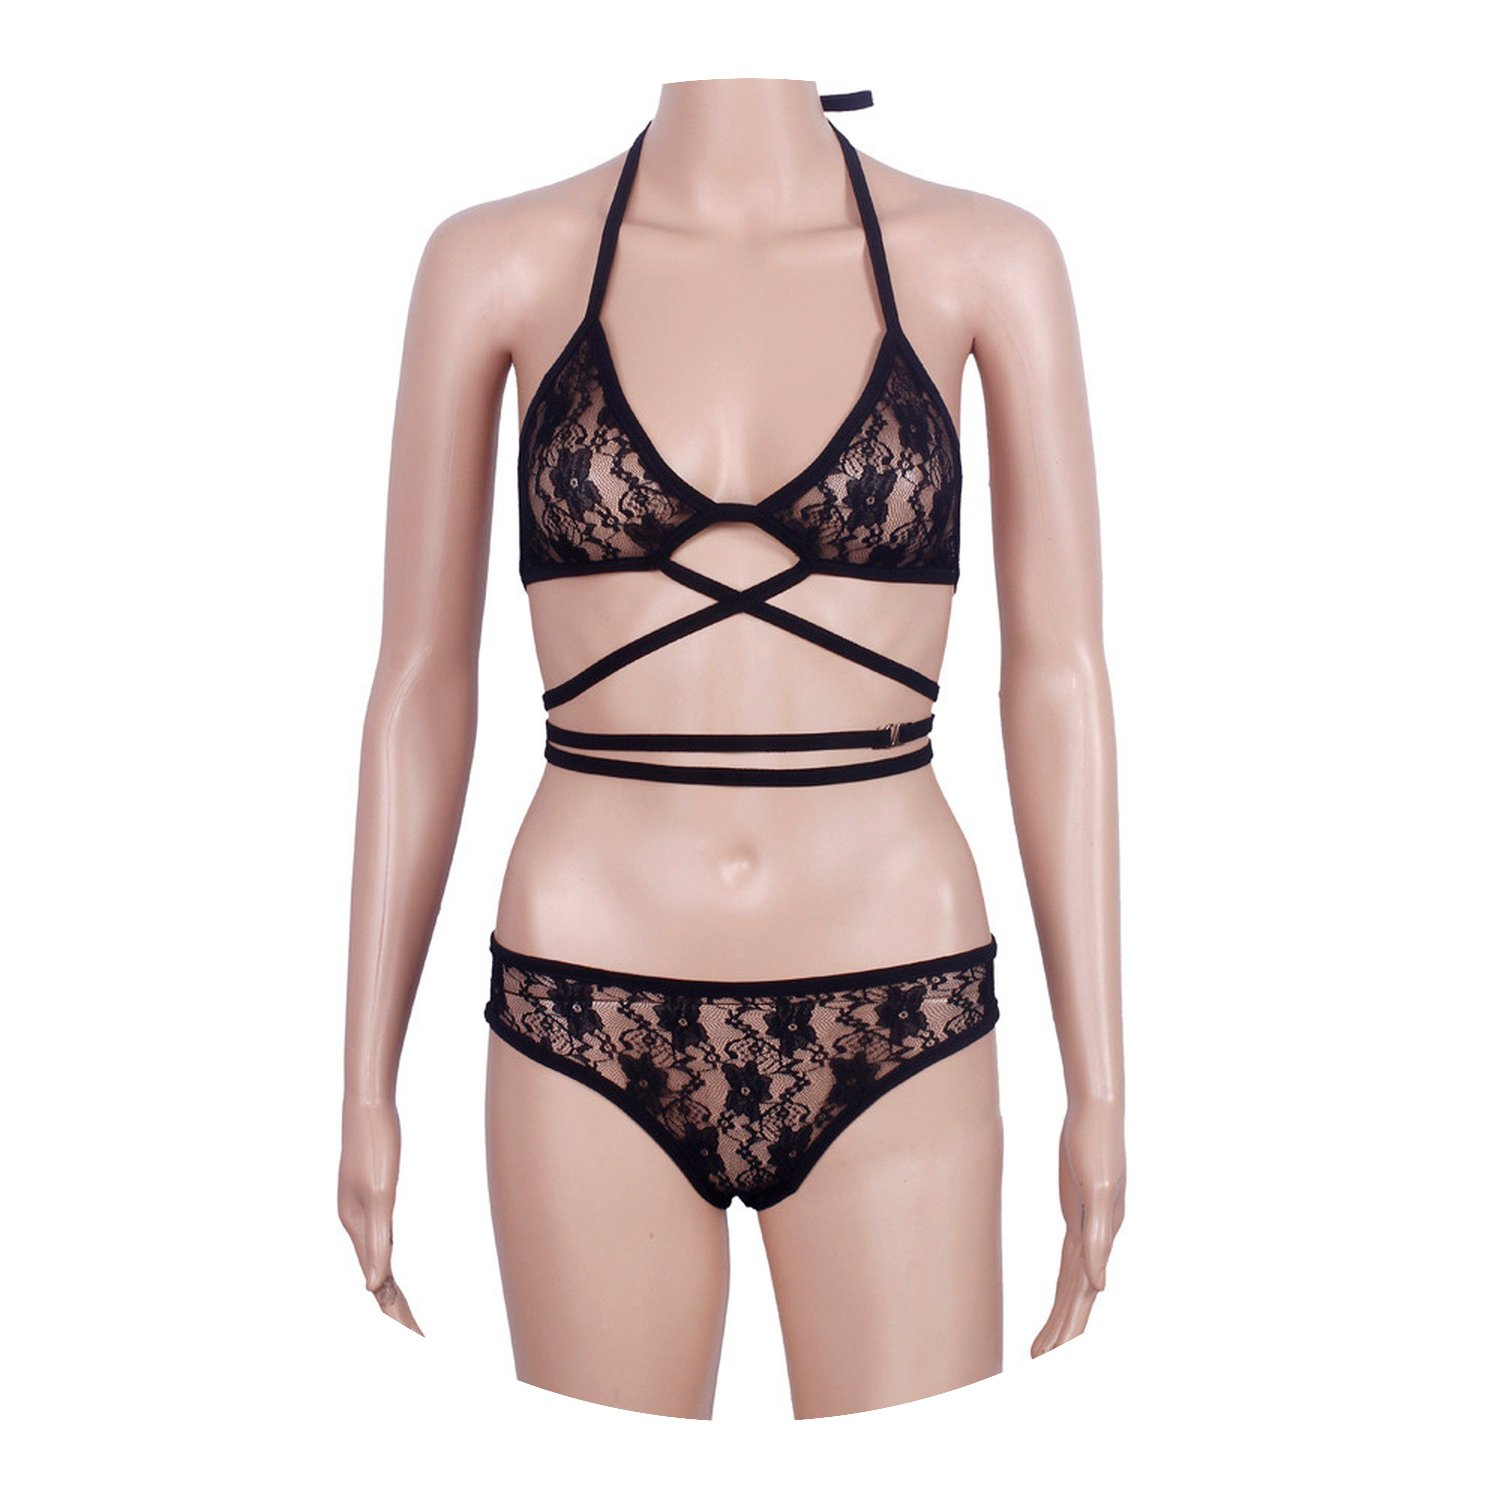 Sexy Lingerie Lace Cross Belt Hollow Bra Intimate Ladies Underwear Set Lace  Bra and Panty Set Black at Amazon Women s Clothing store  d2c163ef3